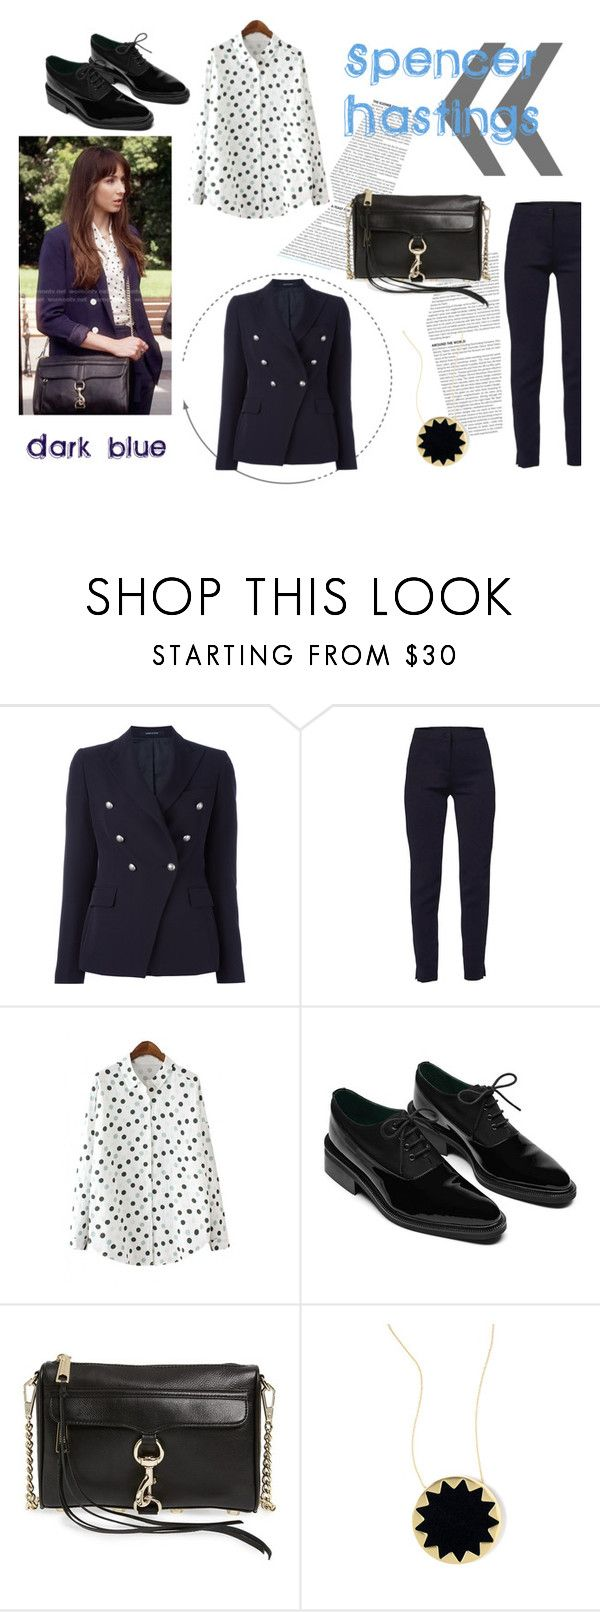 """""""Spencer Hastings.Colour #15"""" by spencer-hastings-5 ❤ liked on Polyvore featuring Tagliatore, WtR, WithChic, Oxford, Rebecca Minkoff, House of Harlow 1960 and colours"""